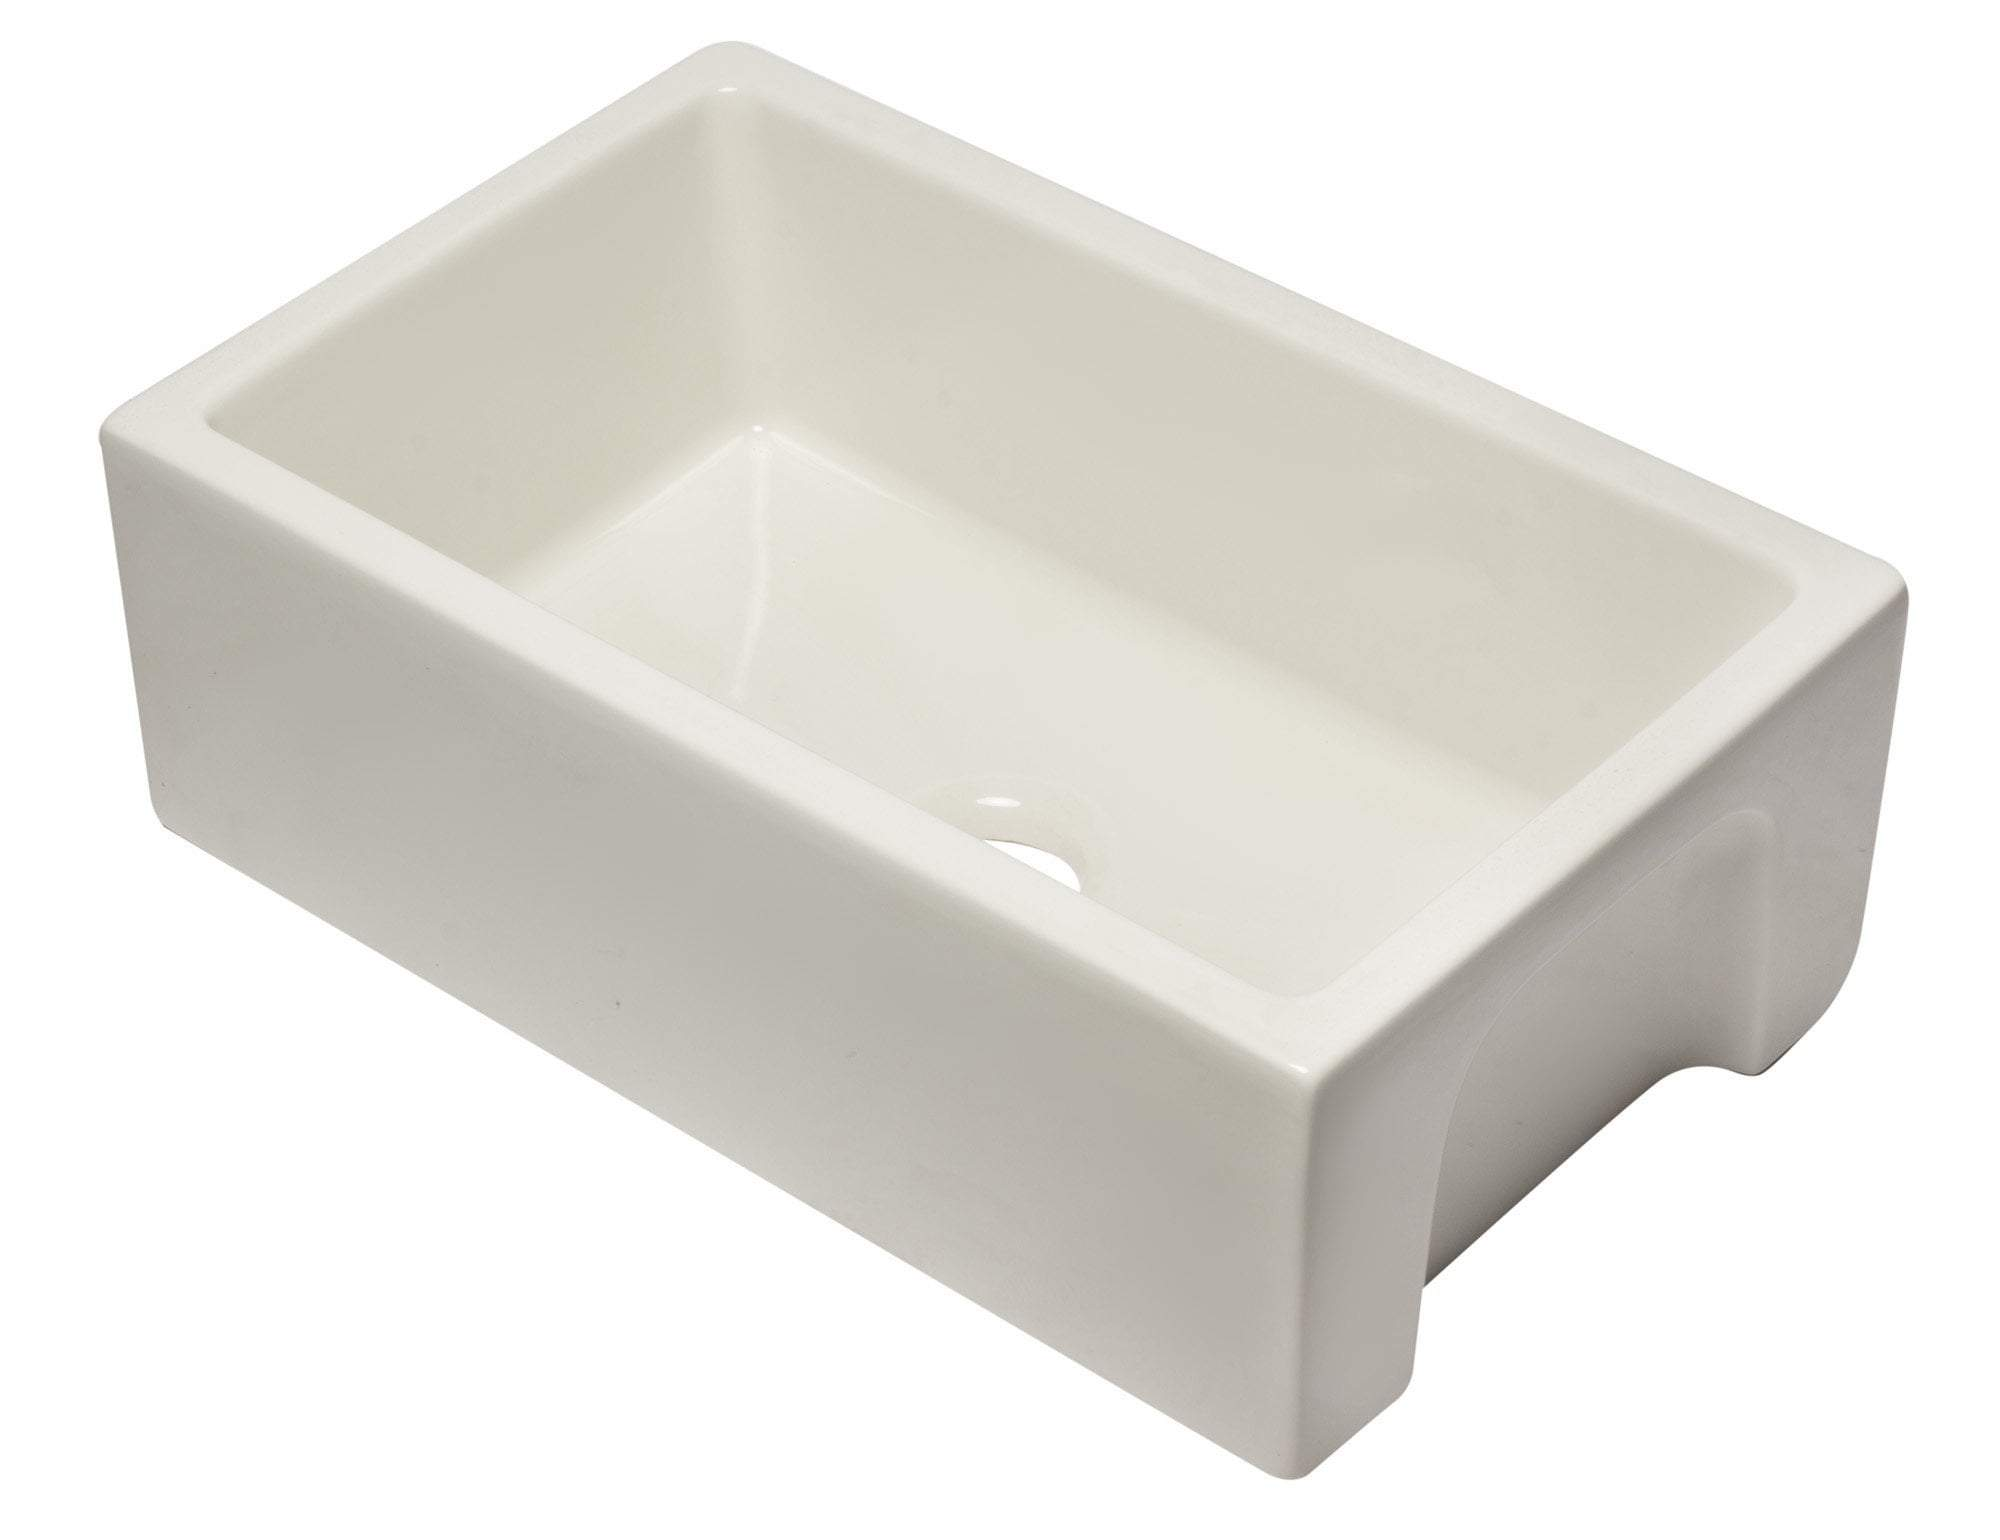 30 inch Biscuit Reversible Smooth / Fluted Single Bowl Fireclay Farm Sink